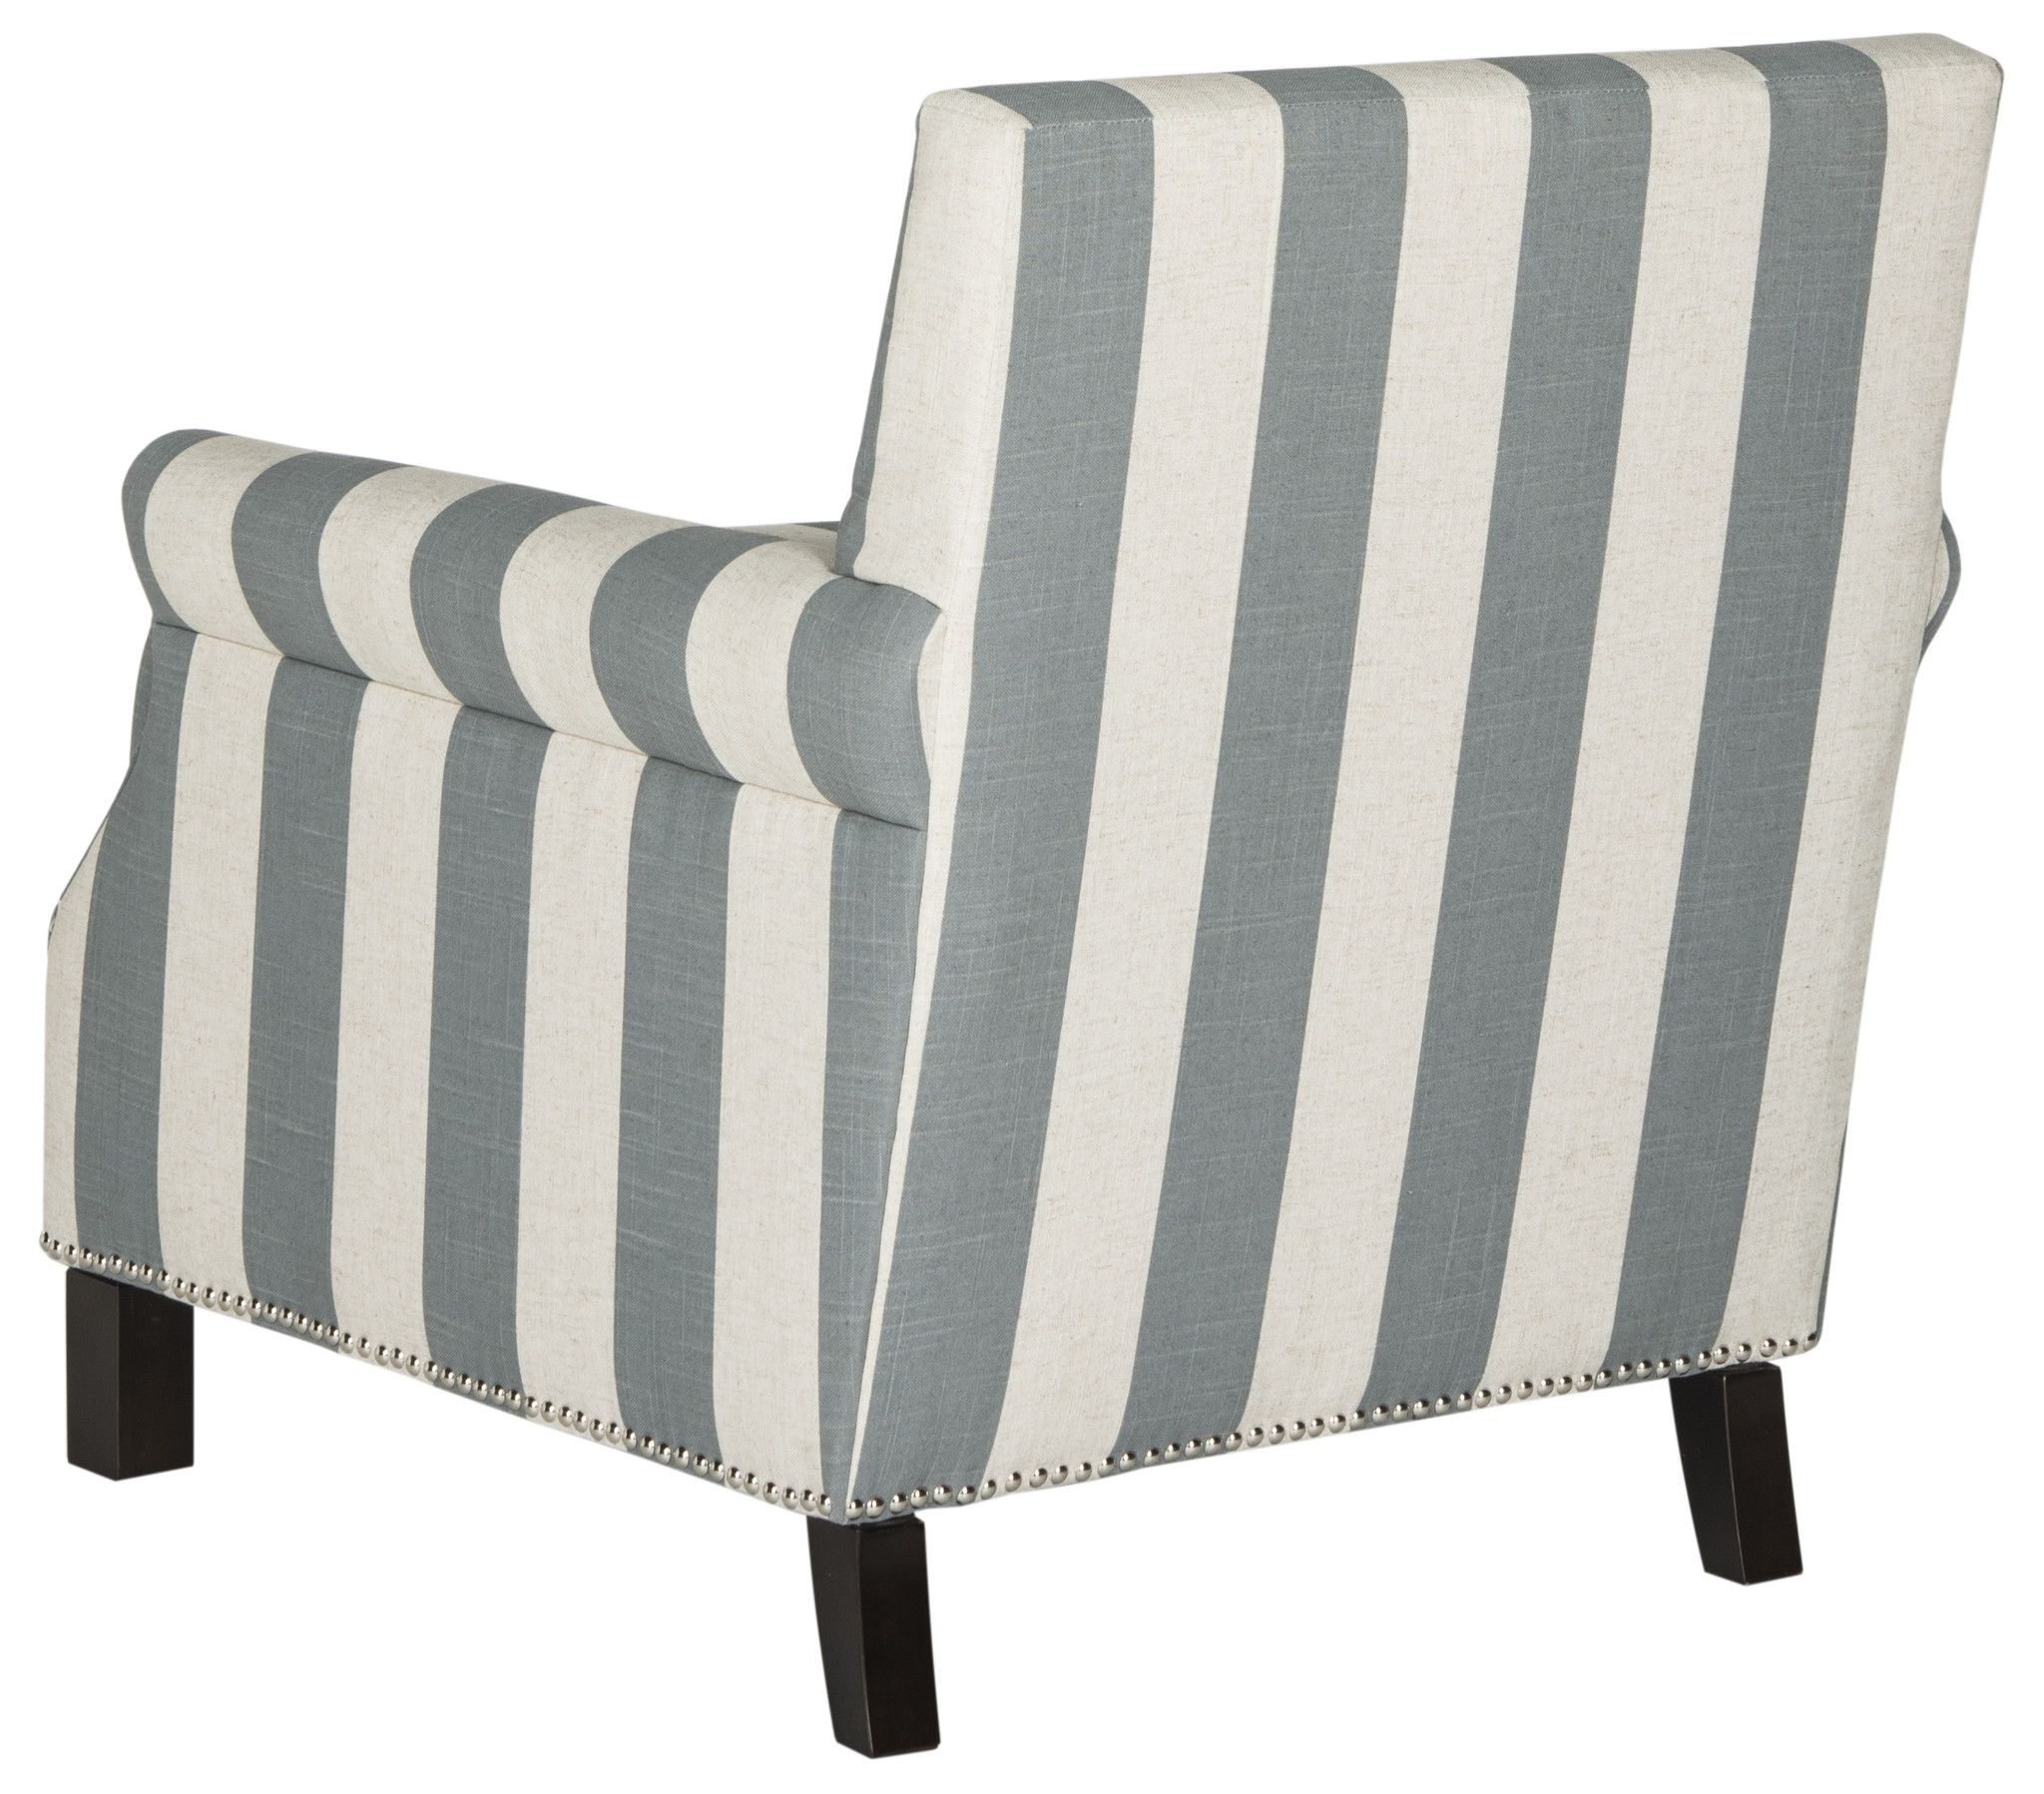 Safavieh Easton Club Chair With Awning Stripes Silver Nail Heads